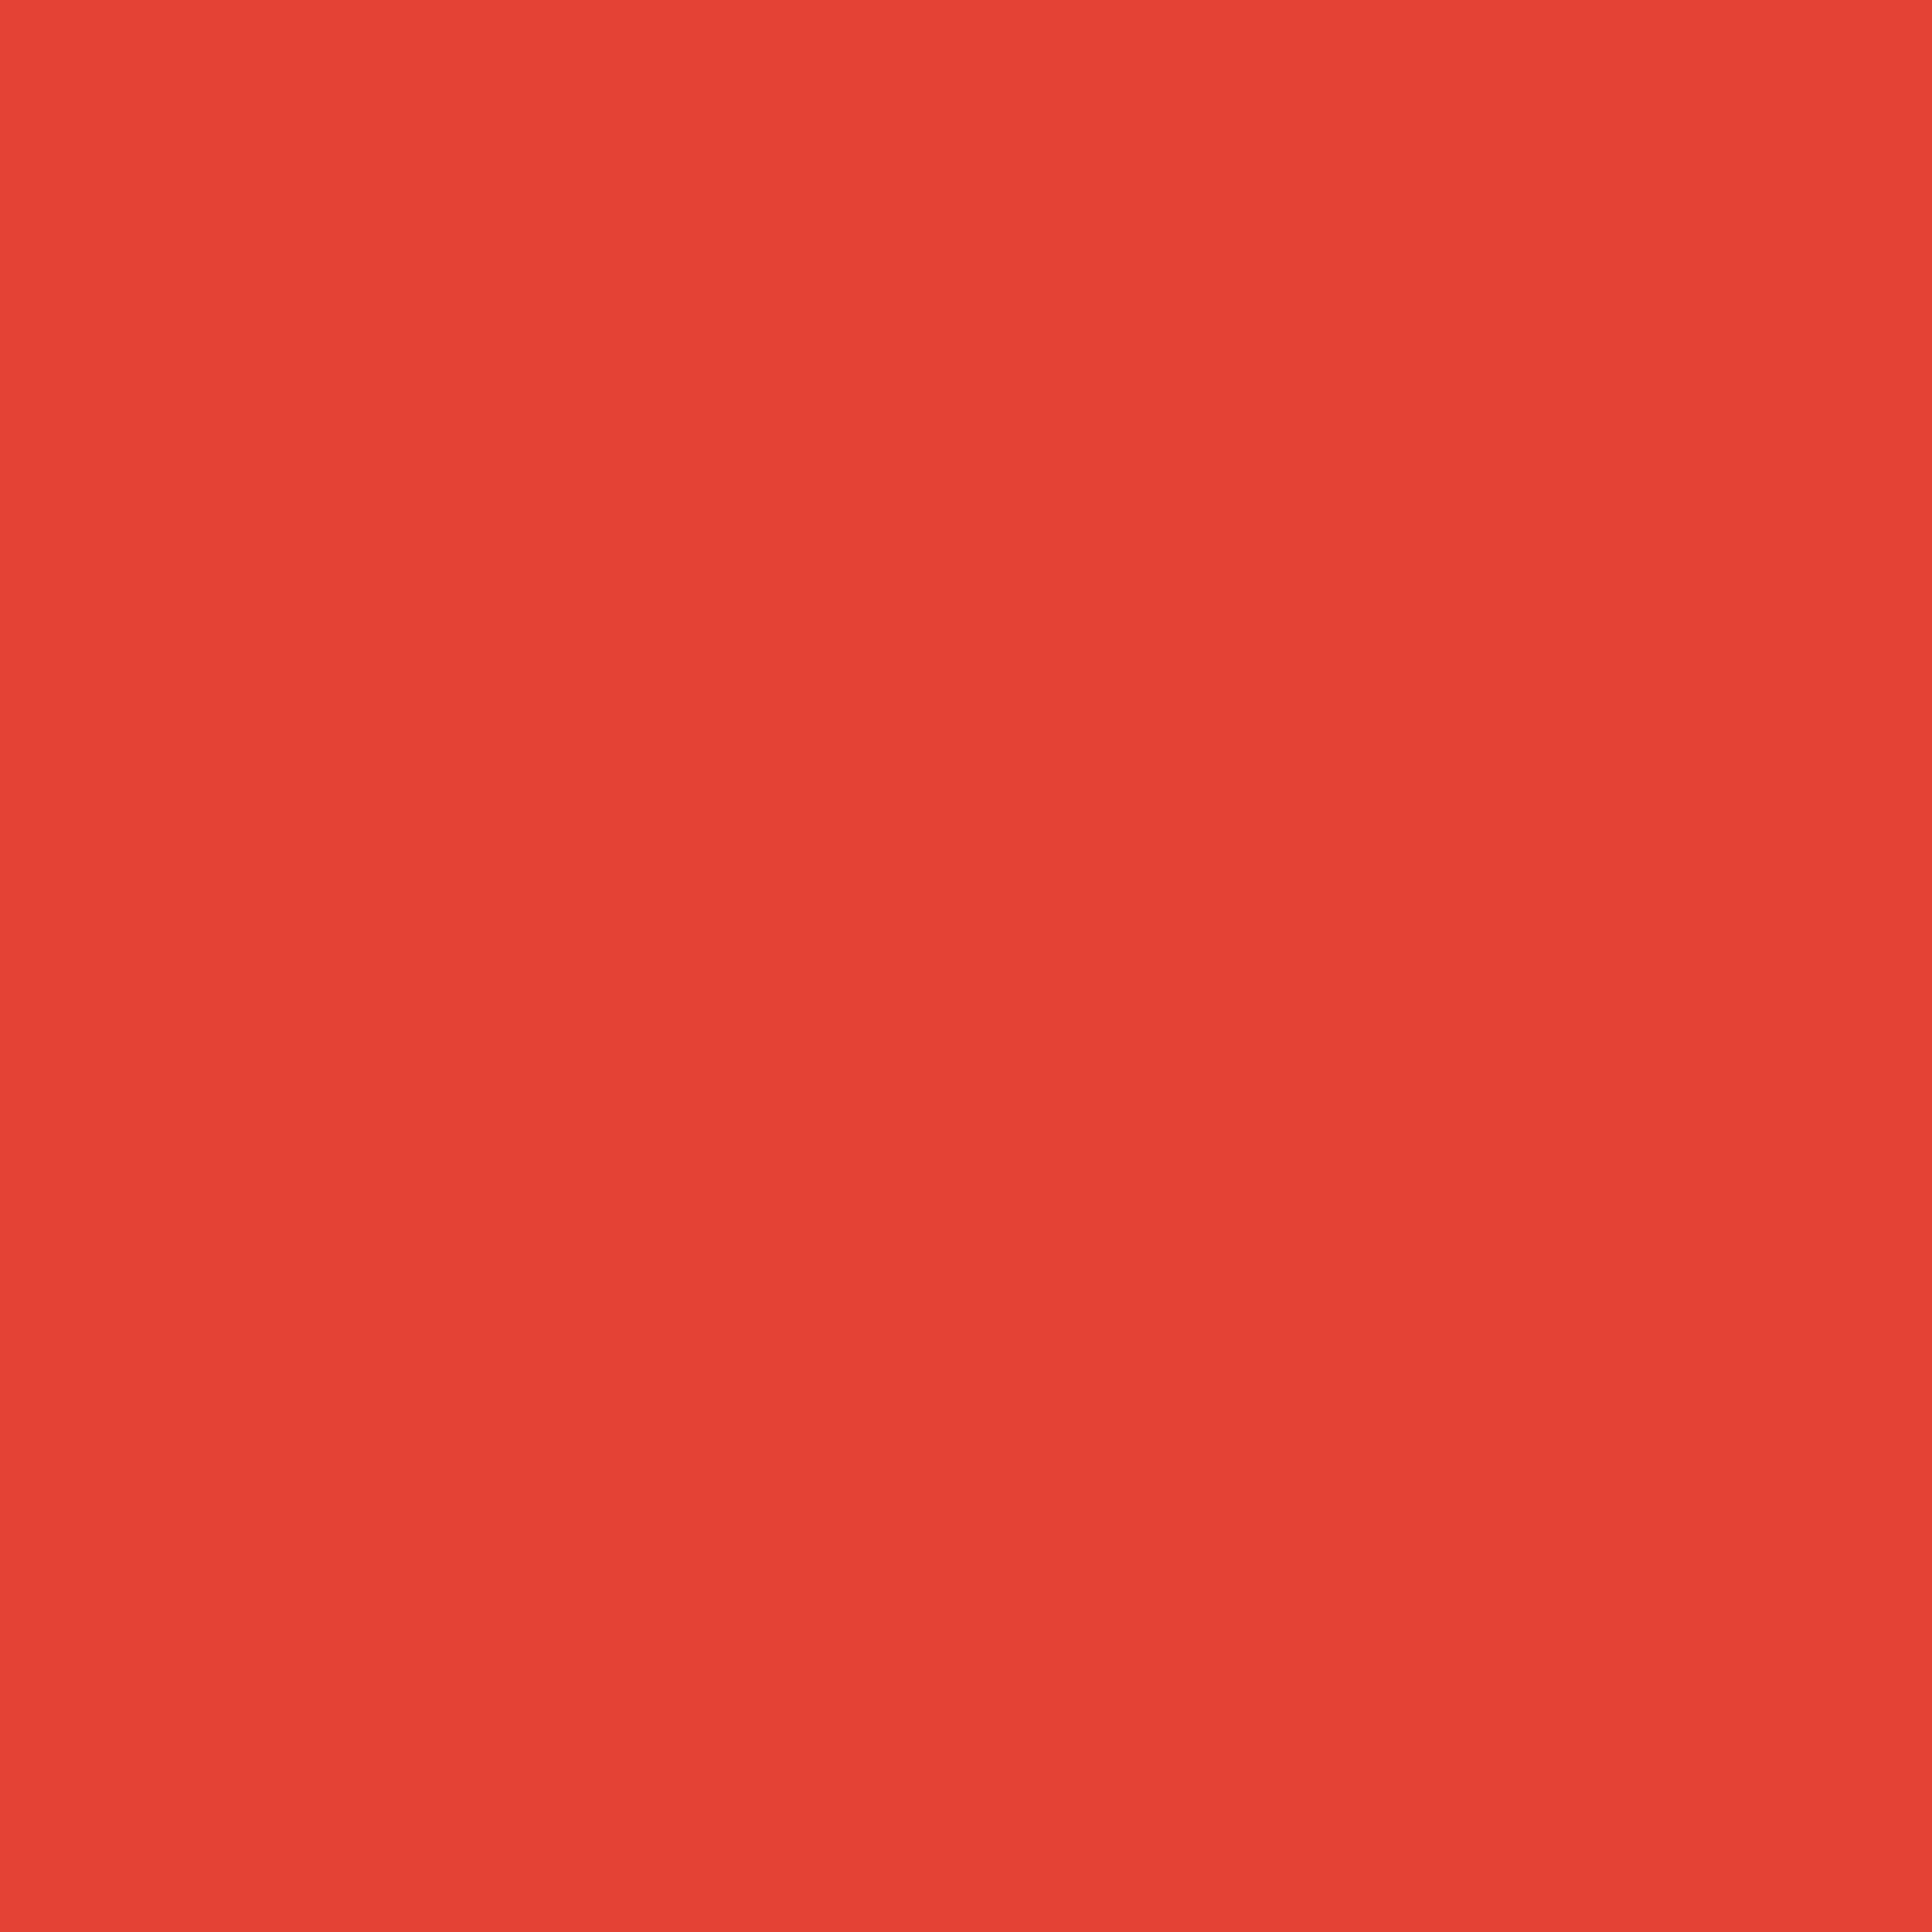 2048x2048 Cinnabar Solid Color Background